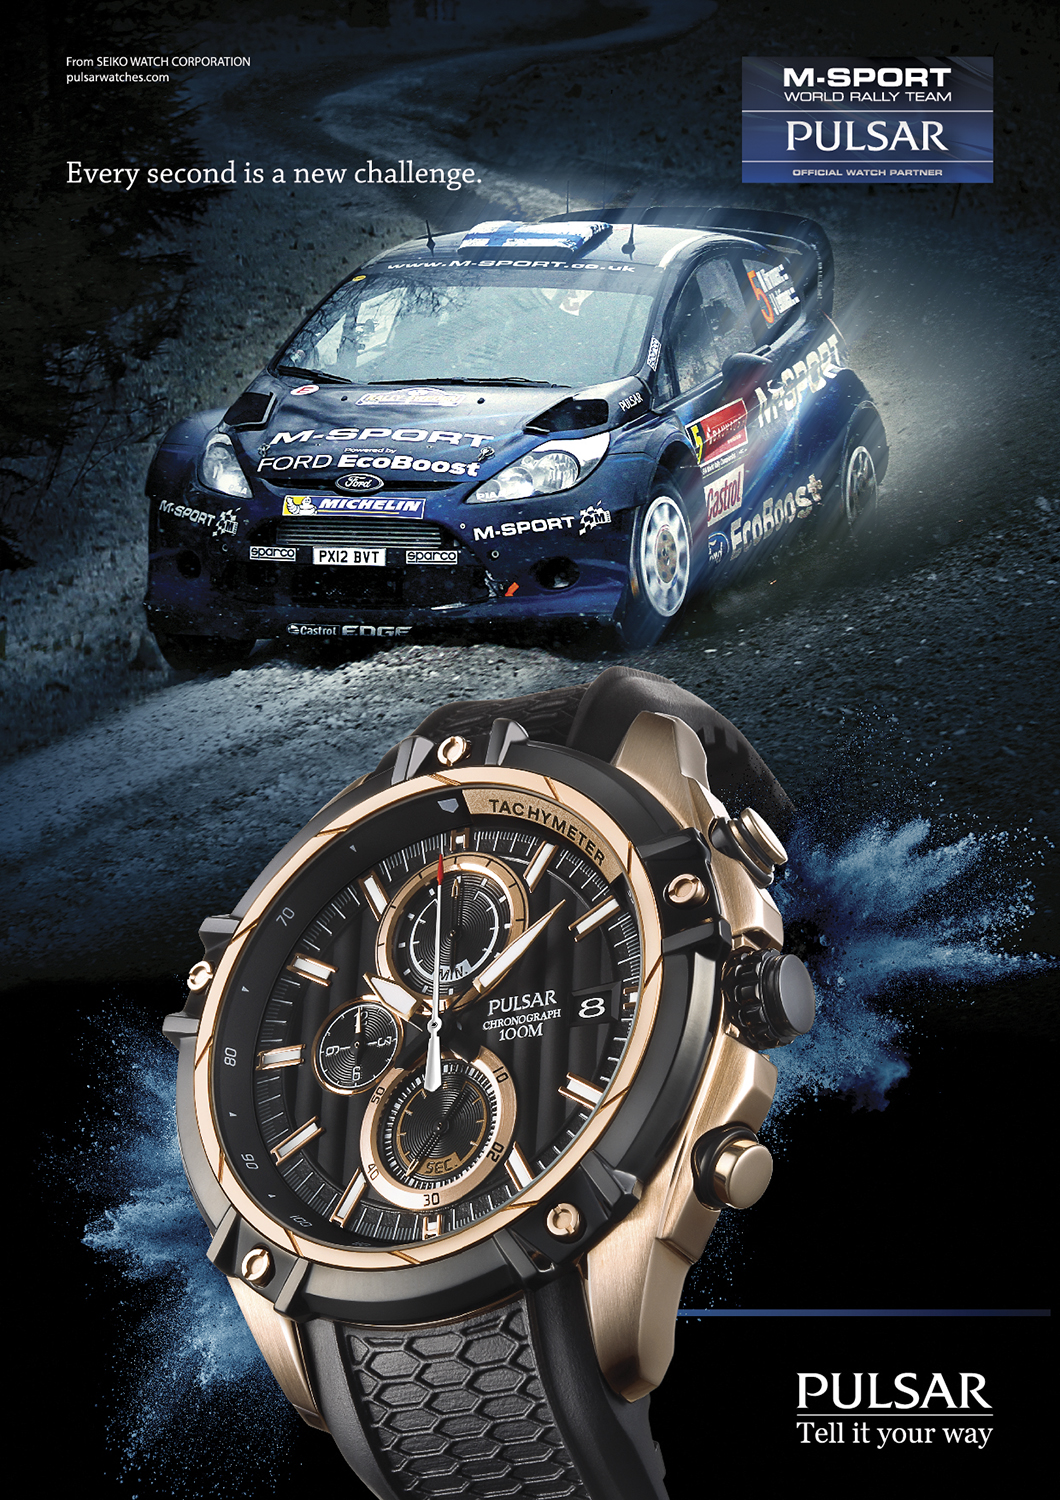 watches monochrome baselworld bell car inspired ross racing chronograph auto from